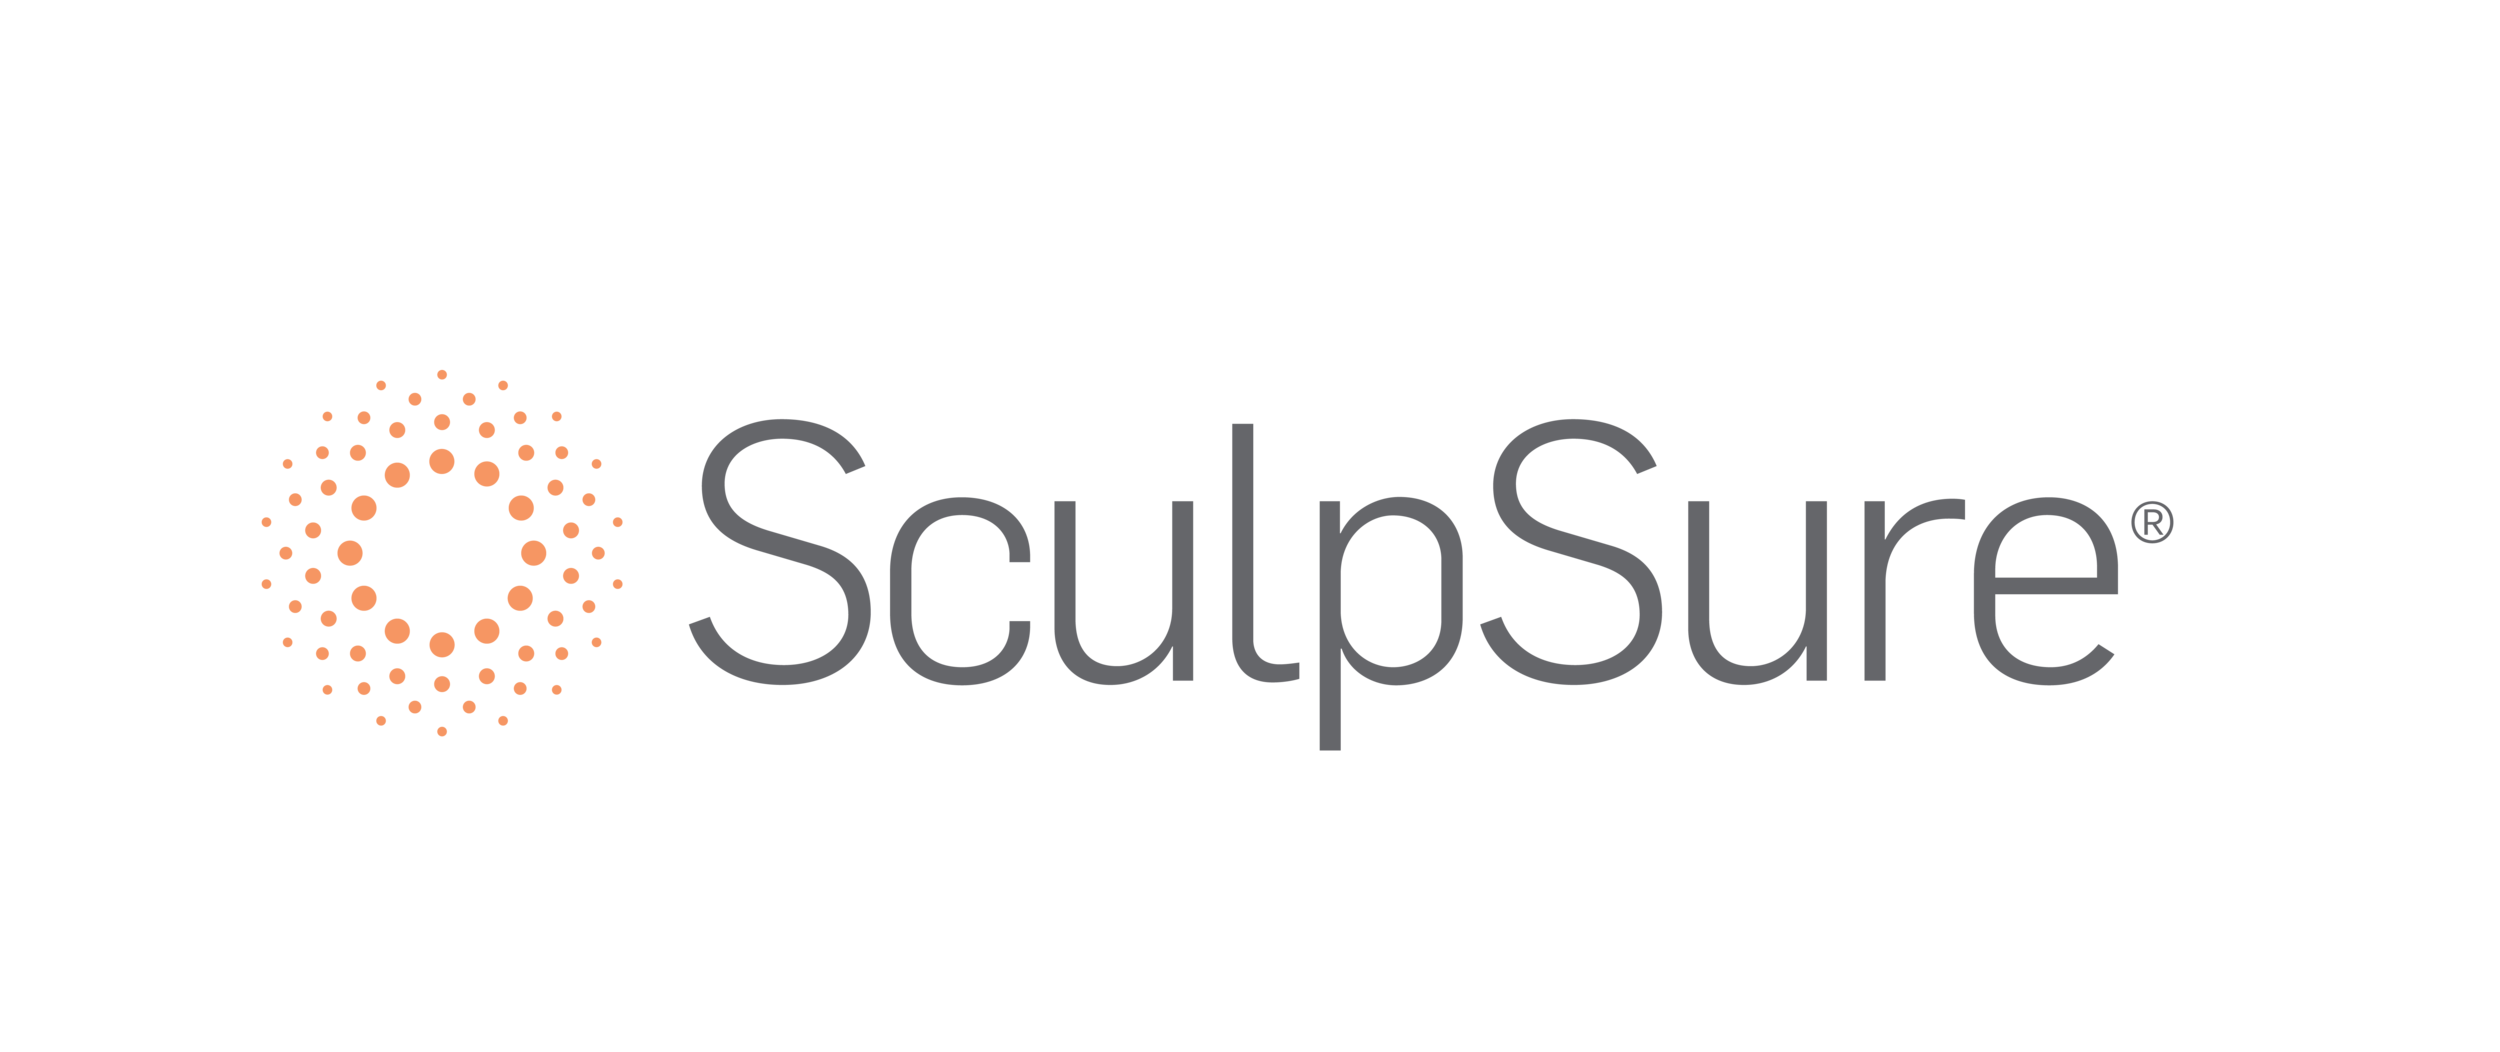 SculpSure-Burst-Logo-1.png